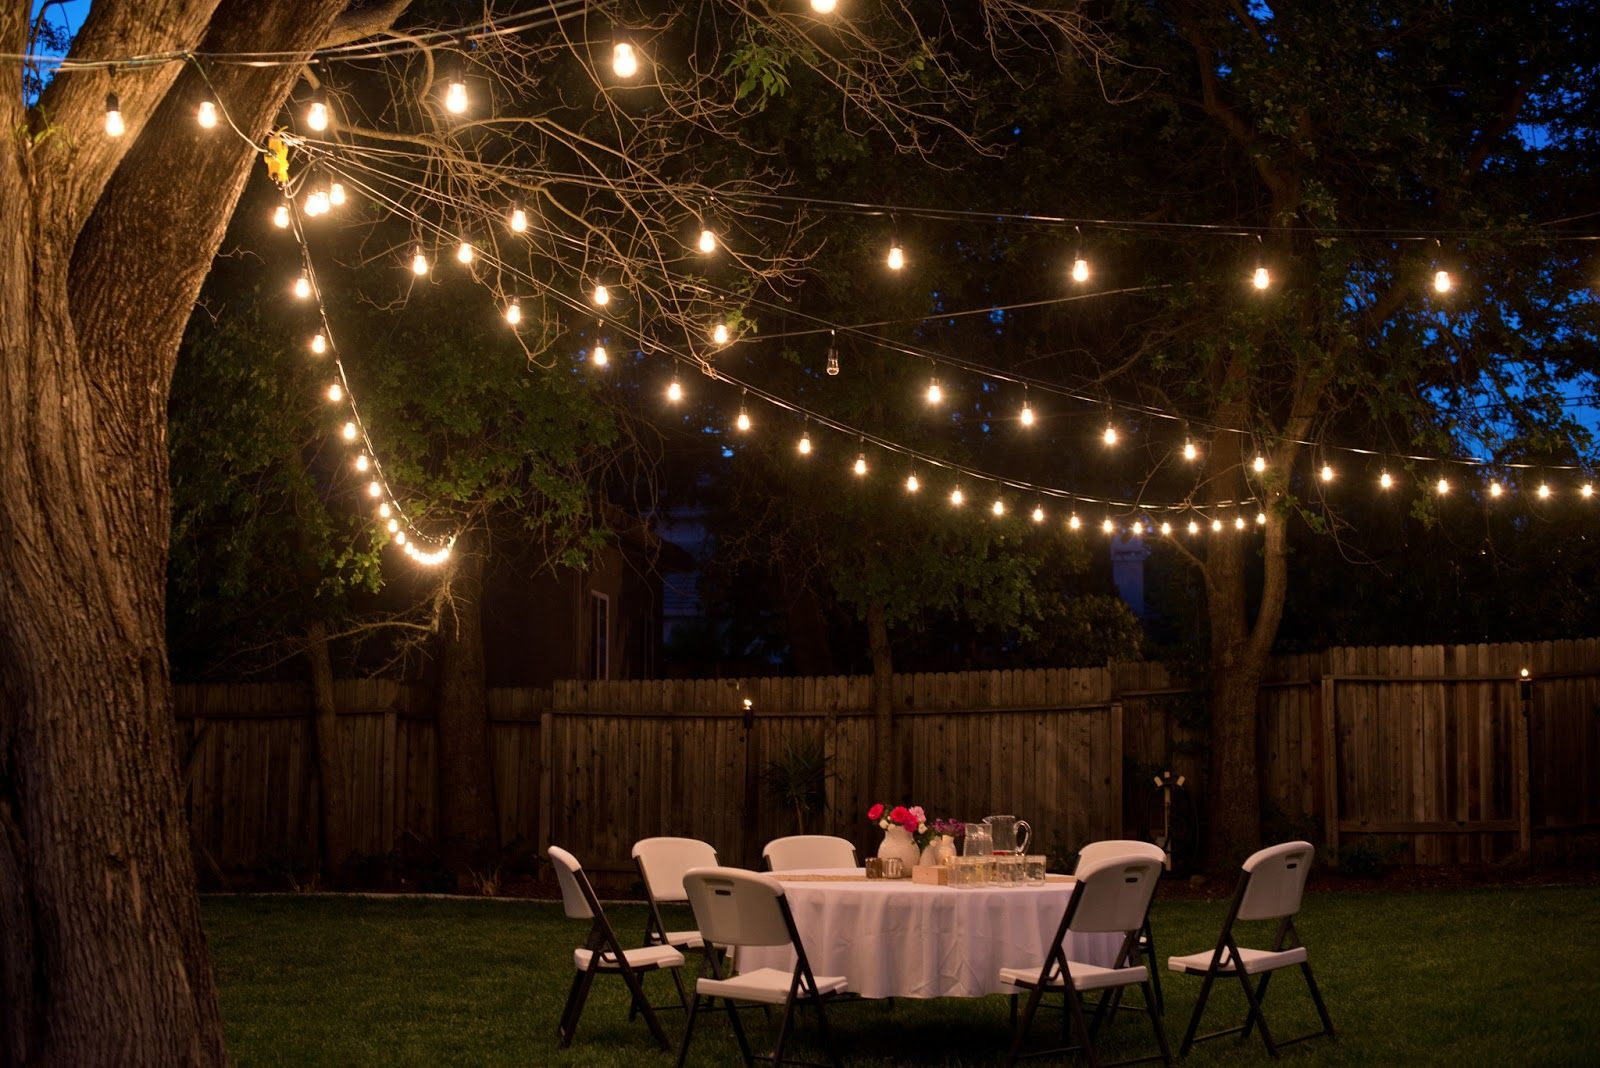 5 Life Hacks To Make Your Backyard A Wonderland The Body